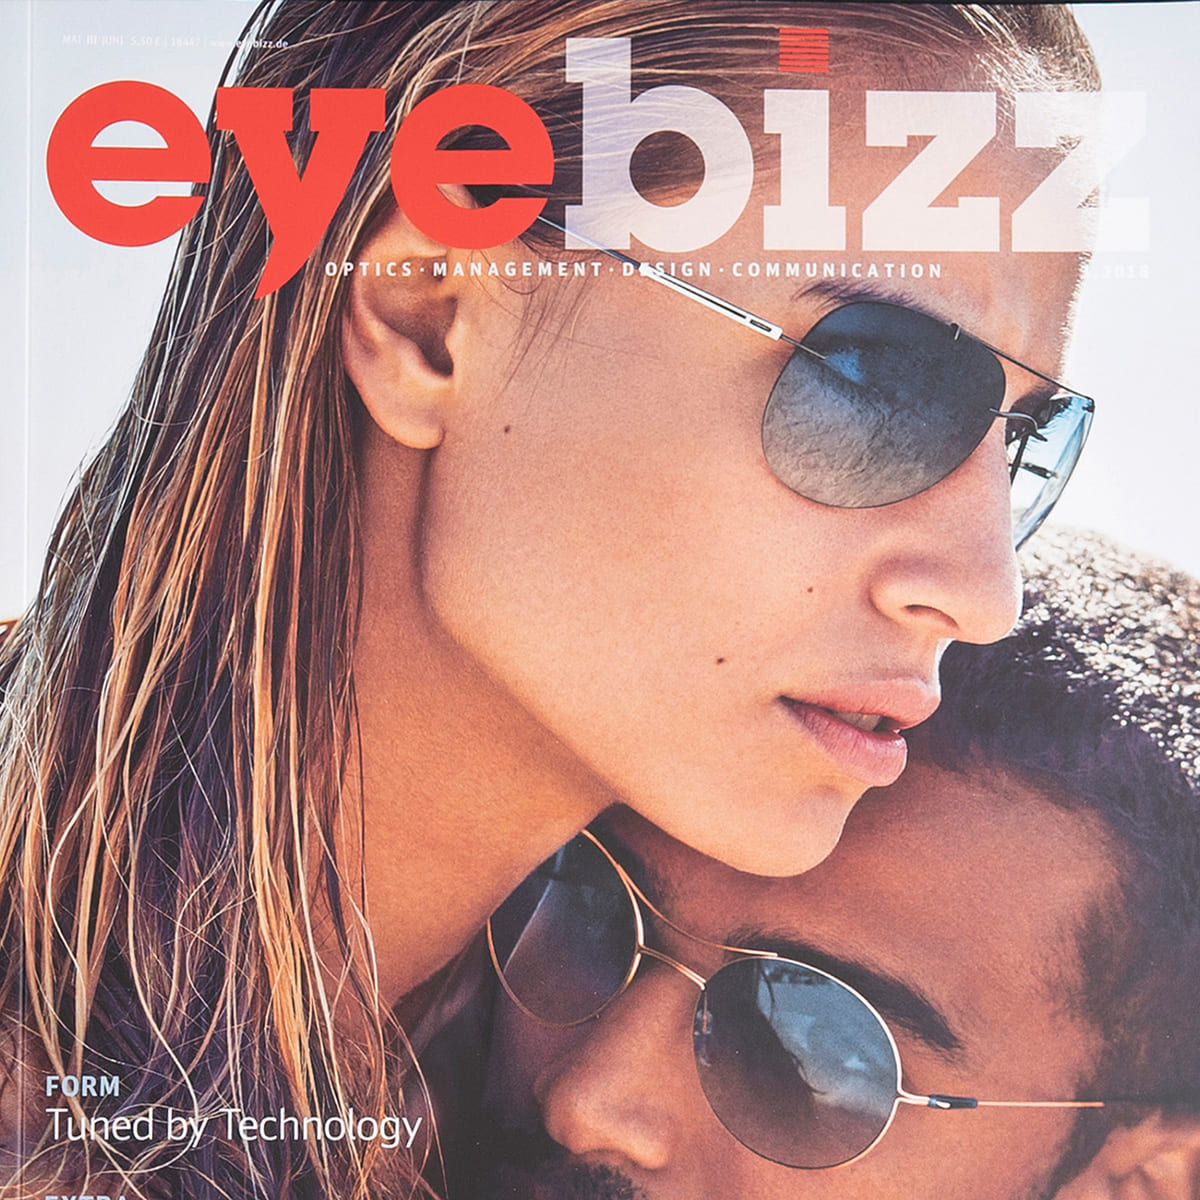 gloryfy Eyebizz Magazin Gi16 Headliner Black and White Sonnenbrille